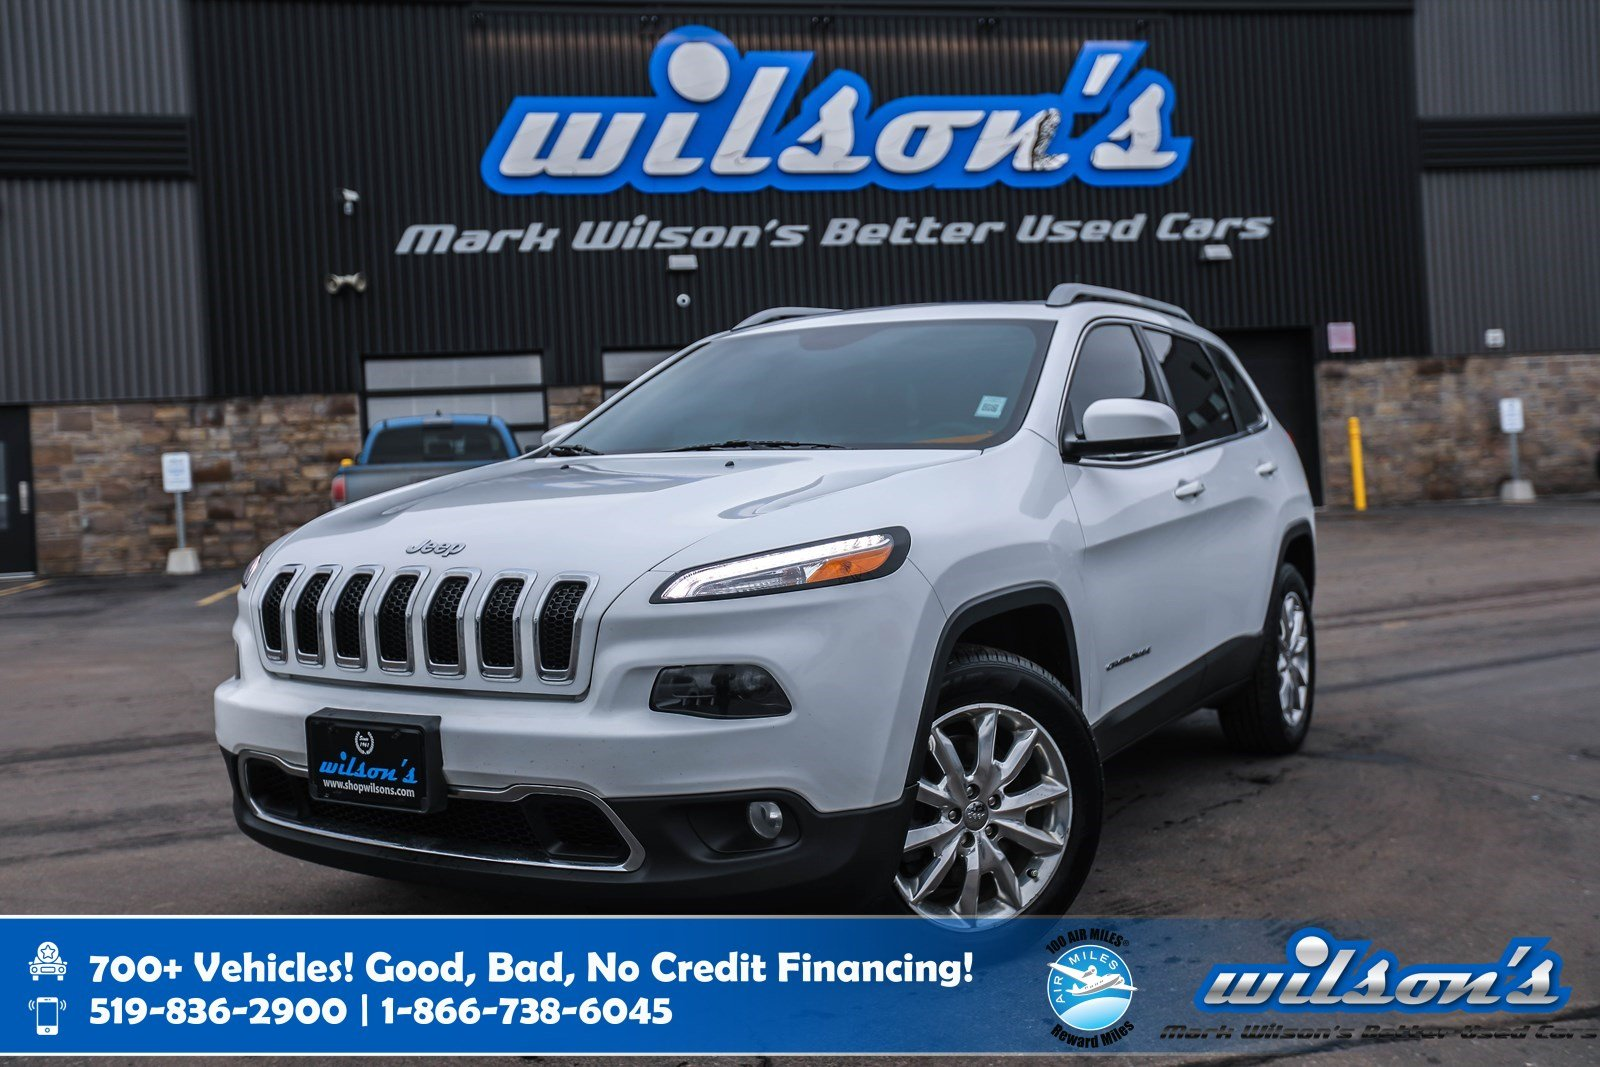 Certified Pre-Owned 2016 Jeep Cherokee Limited 4x4, Leather, Navigation, Sunroof, New Tires, Heated Steering + Seats, Remote Start and more